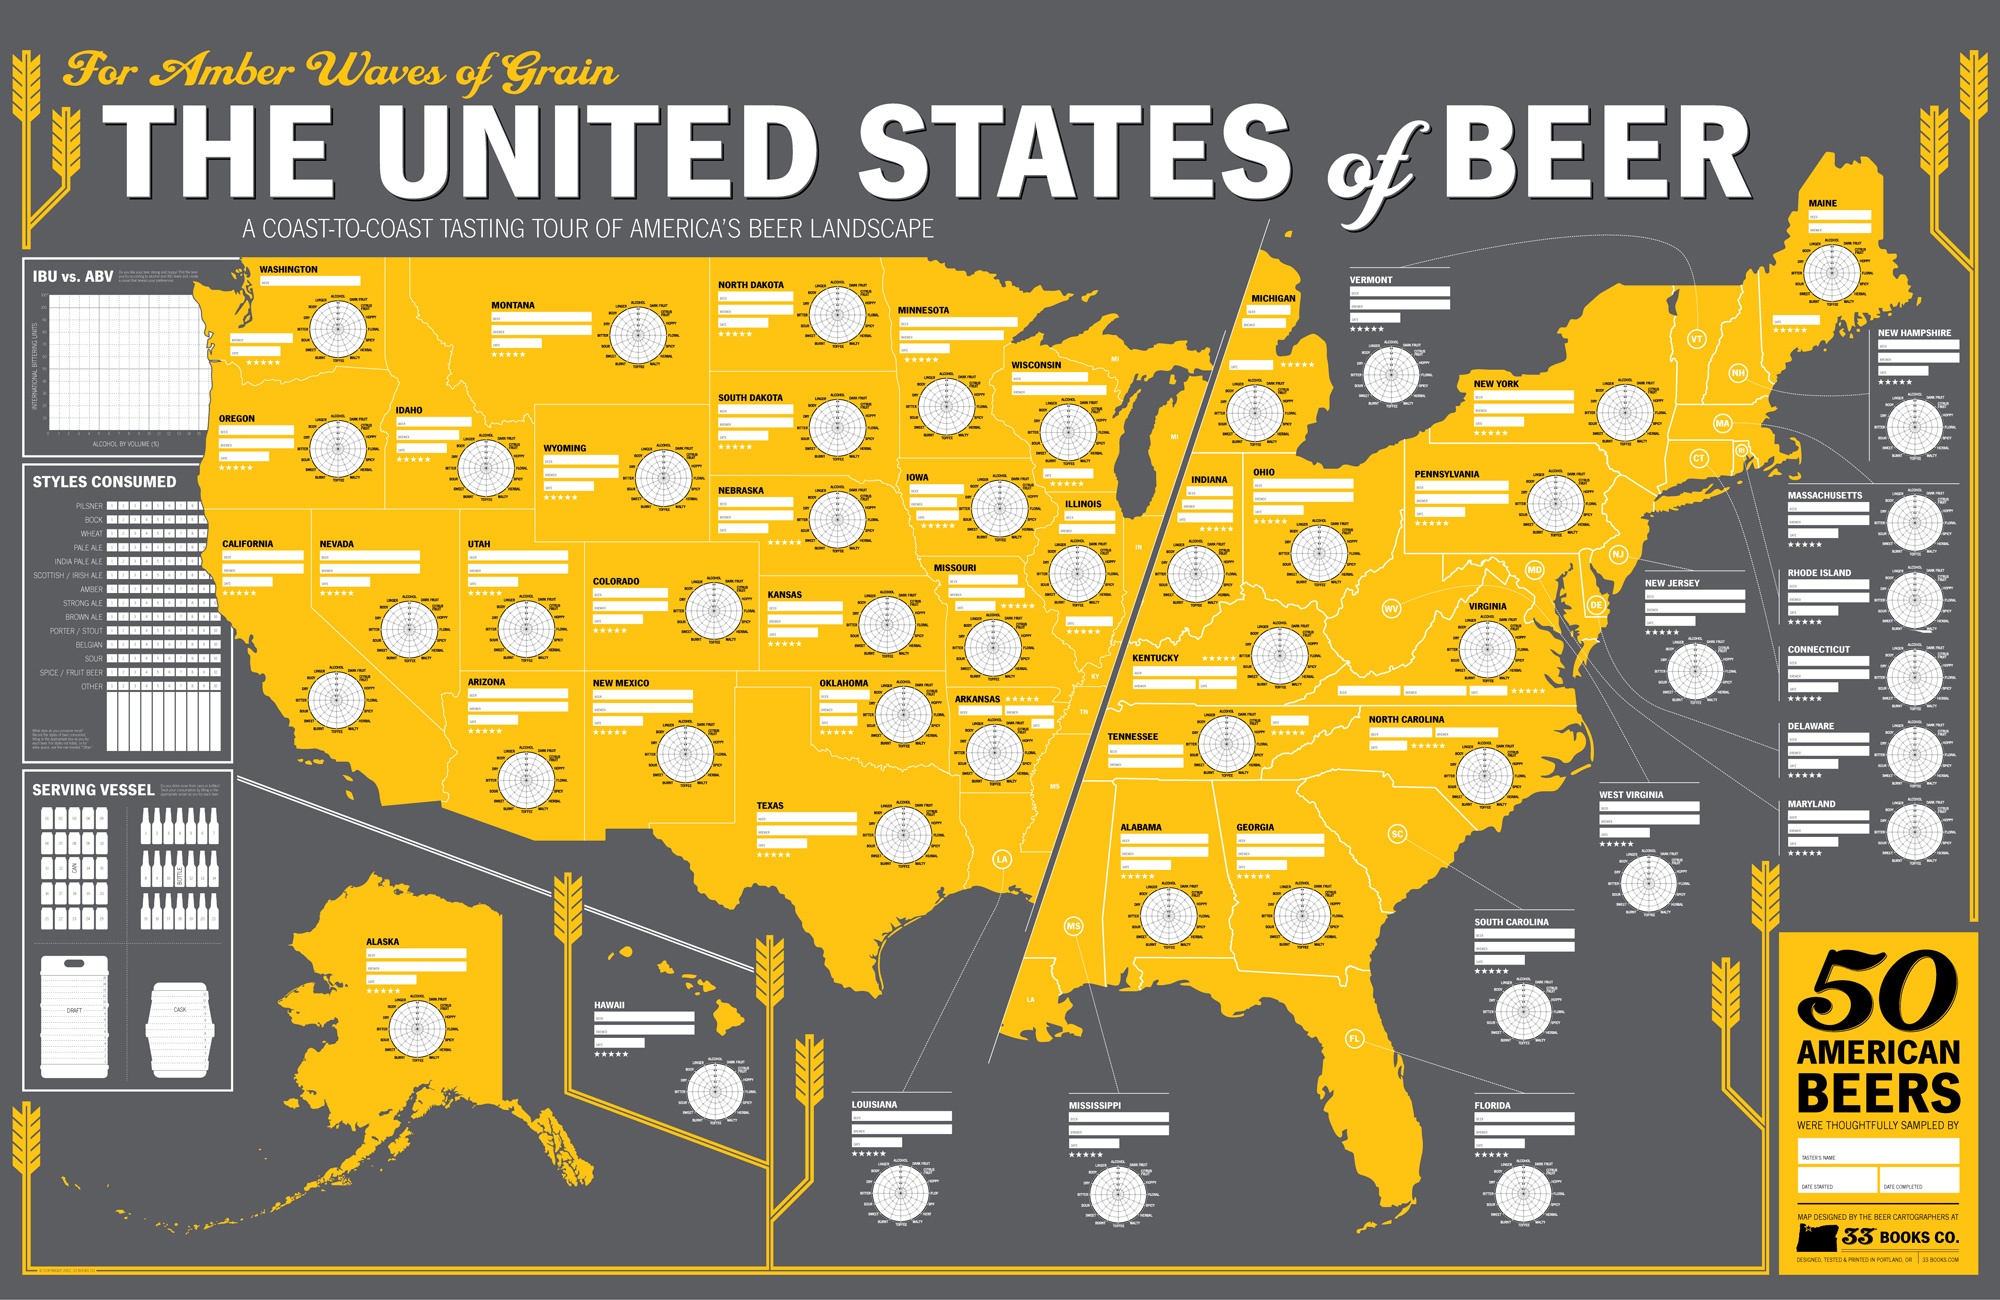 The United States of Beer: A Tasting Map